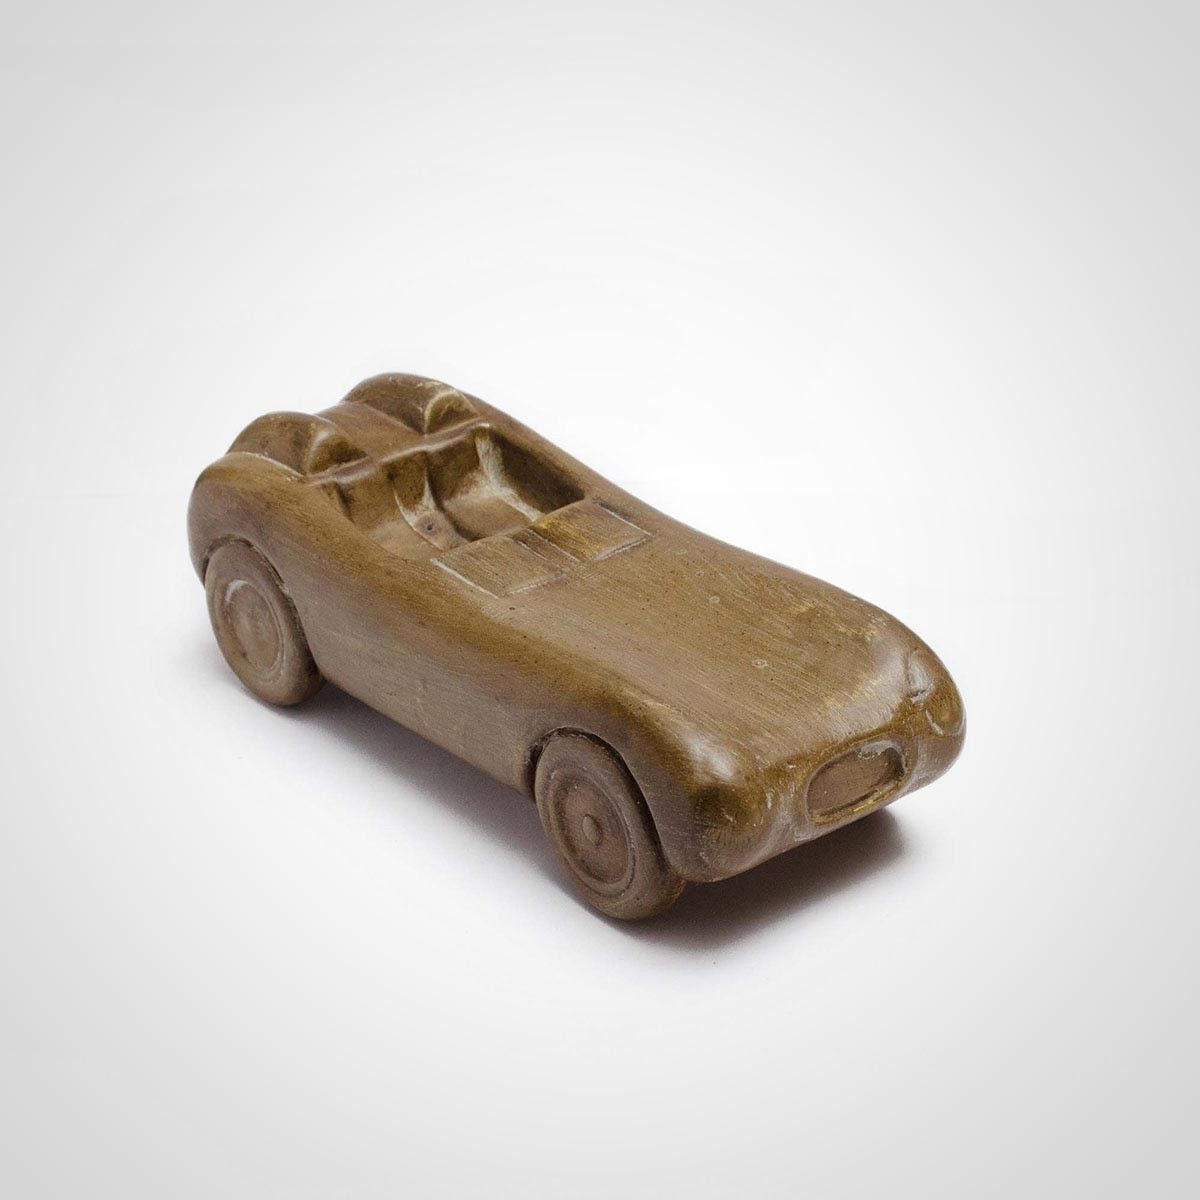 Brown Ceramic Car Model